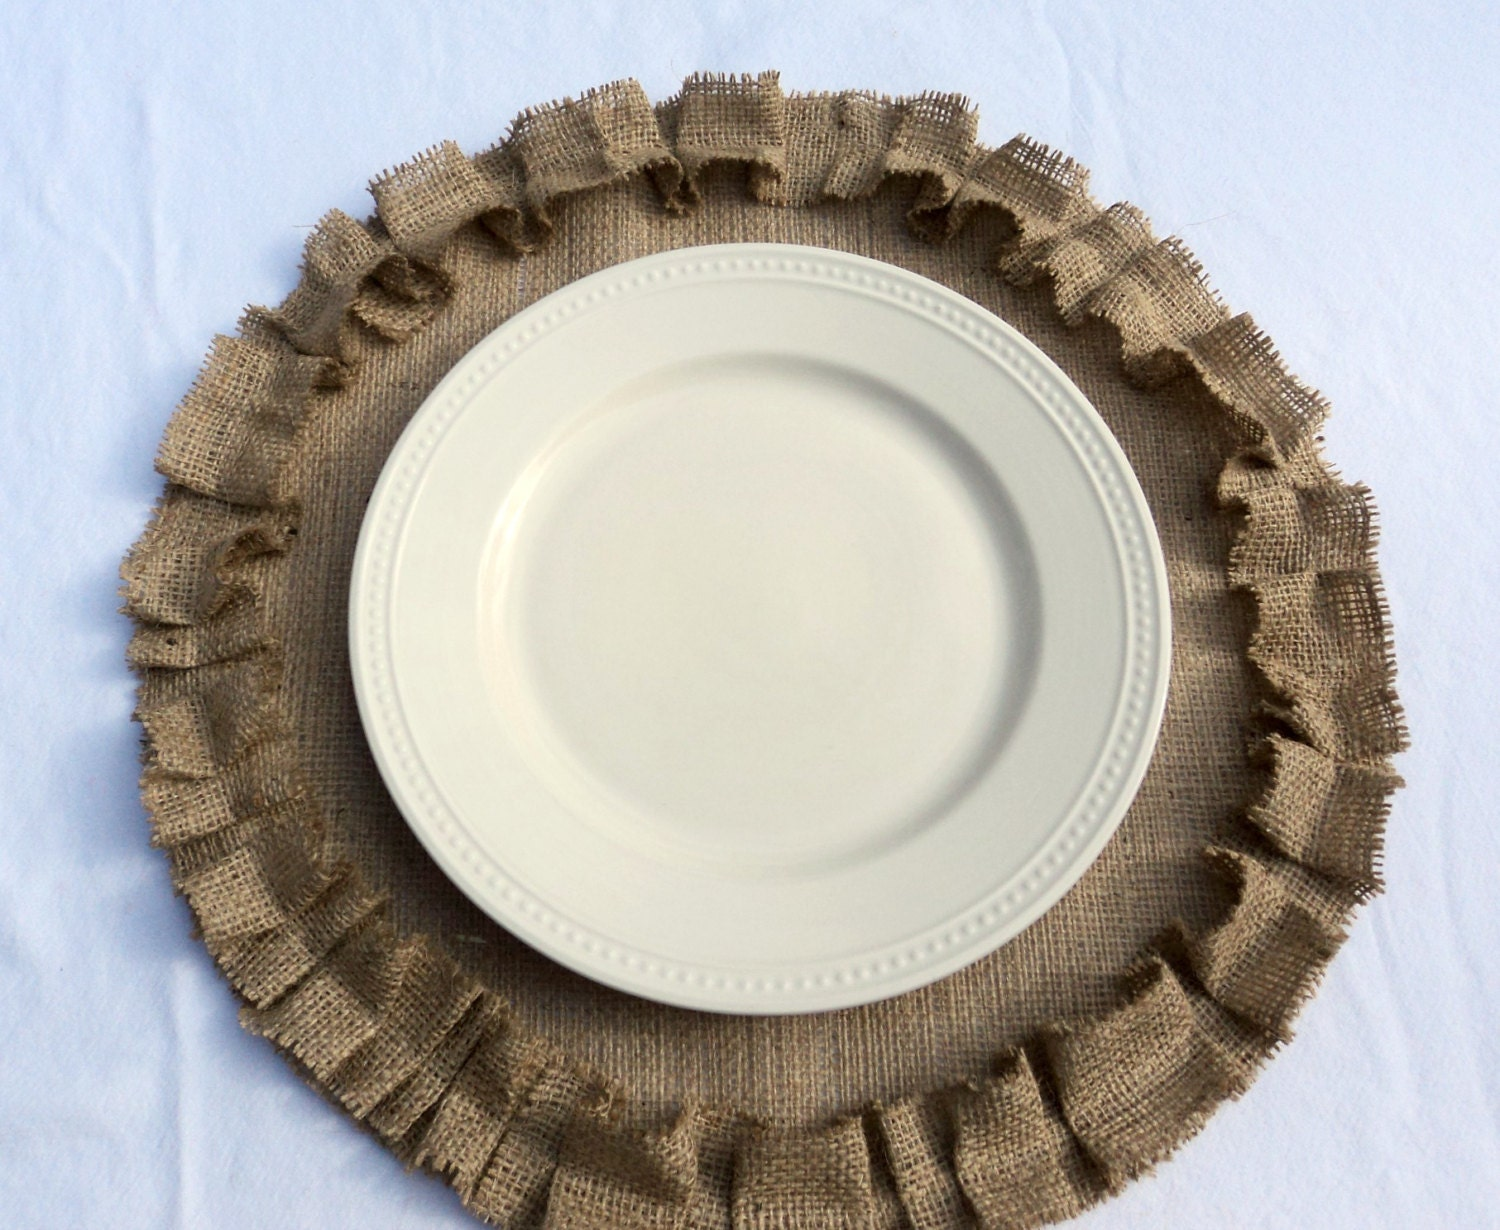 Burlap Placemats Round Burlap Placemats with Ruffles Rustic